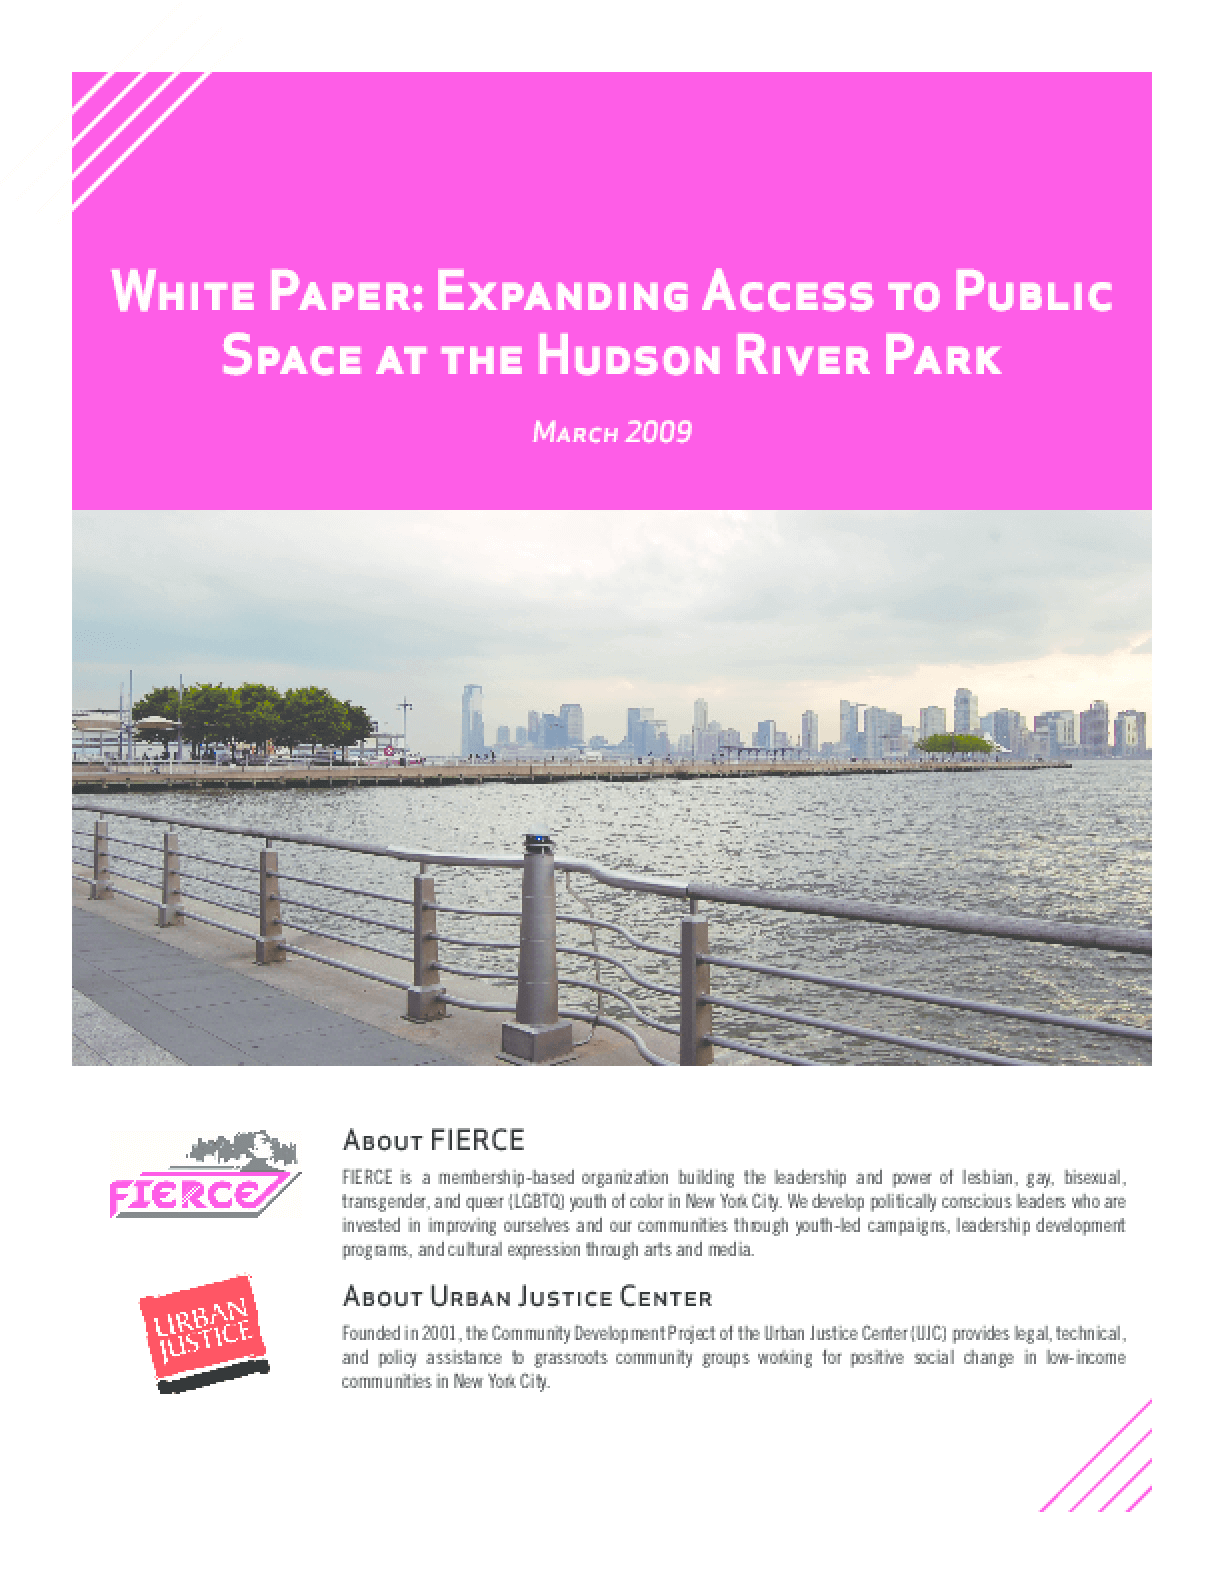 Expanding Access to Public Space at the Hudson River Park